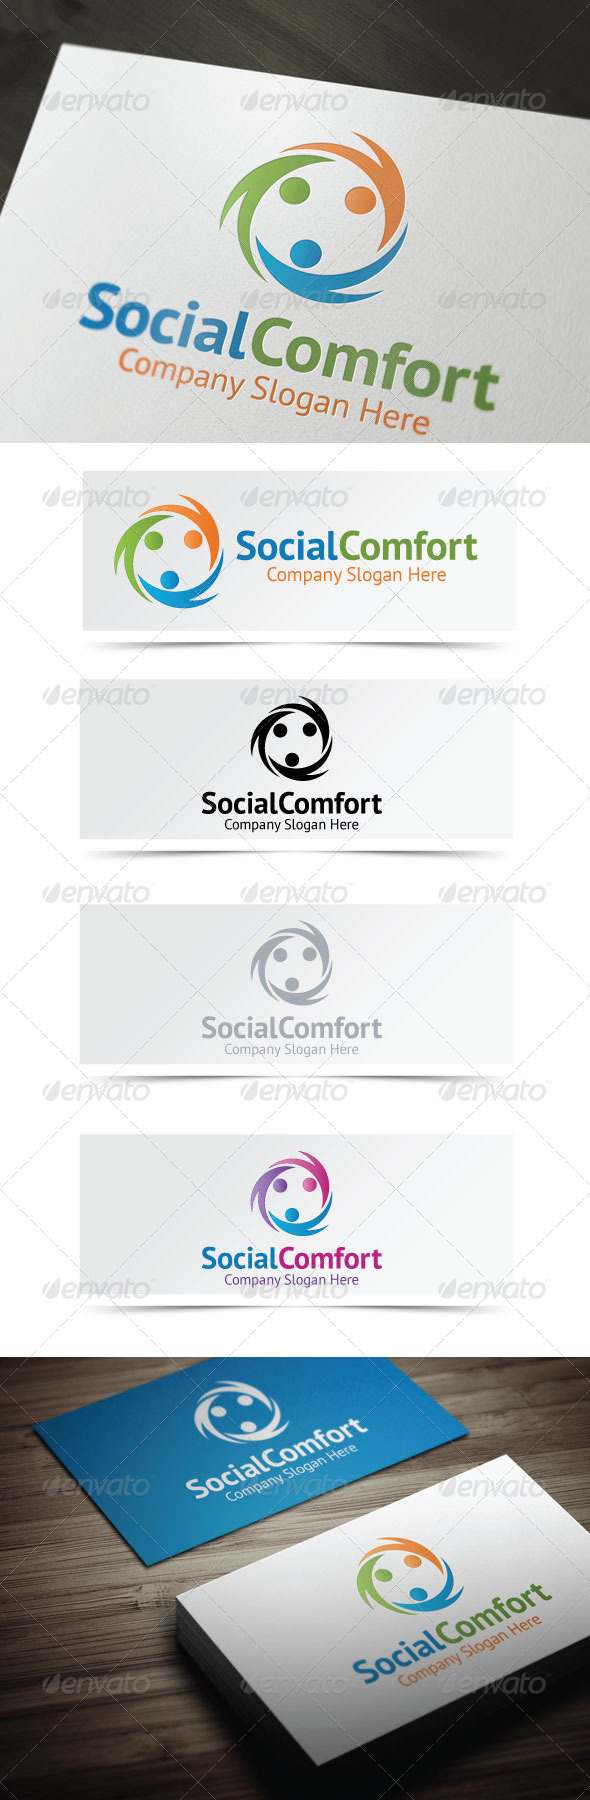 GraphicRiver Social Comfort 4158521